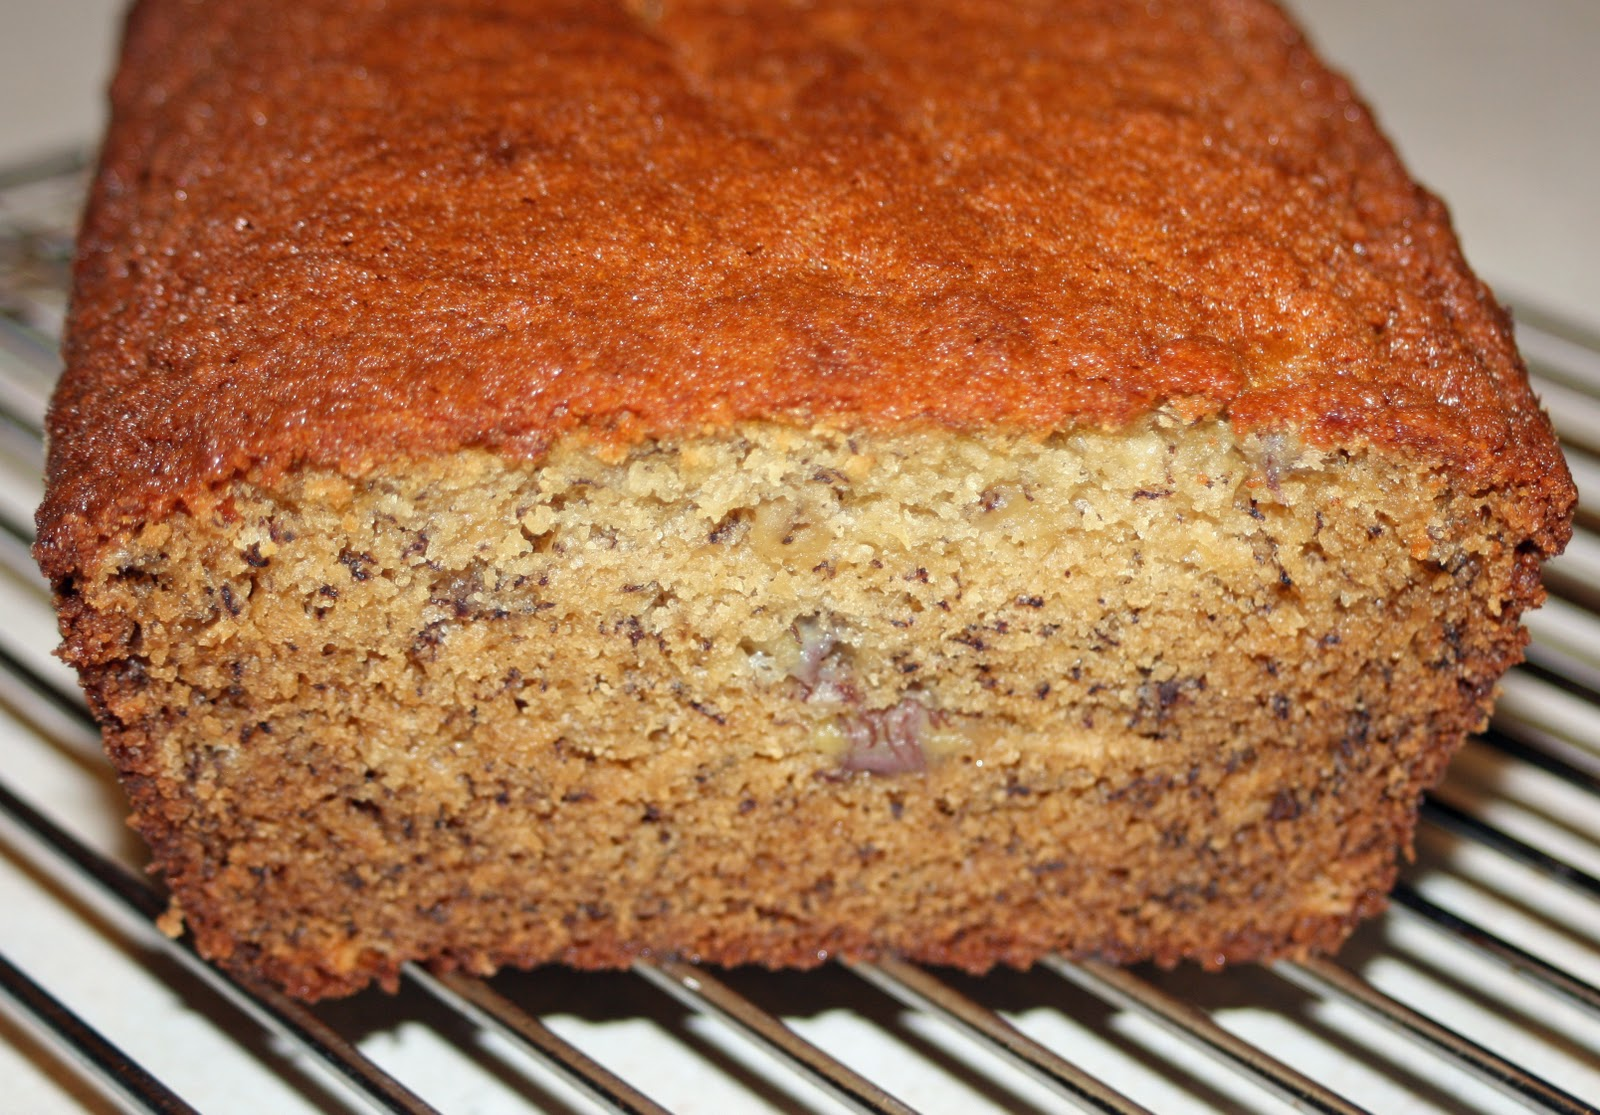 Better Homes And Gardens Cookbook Banana Bread Recipe